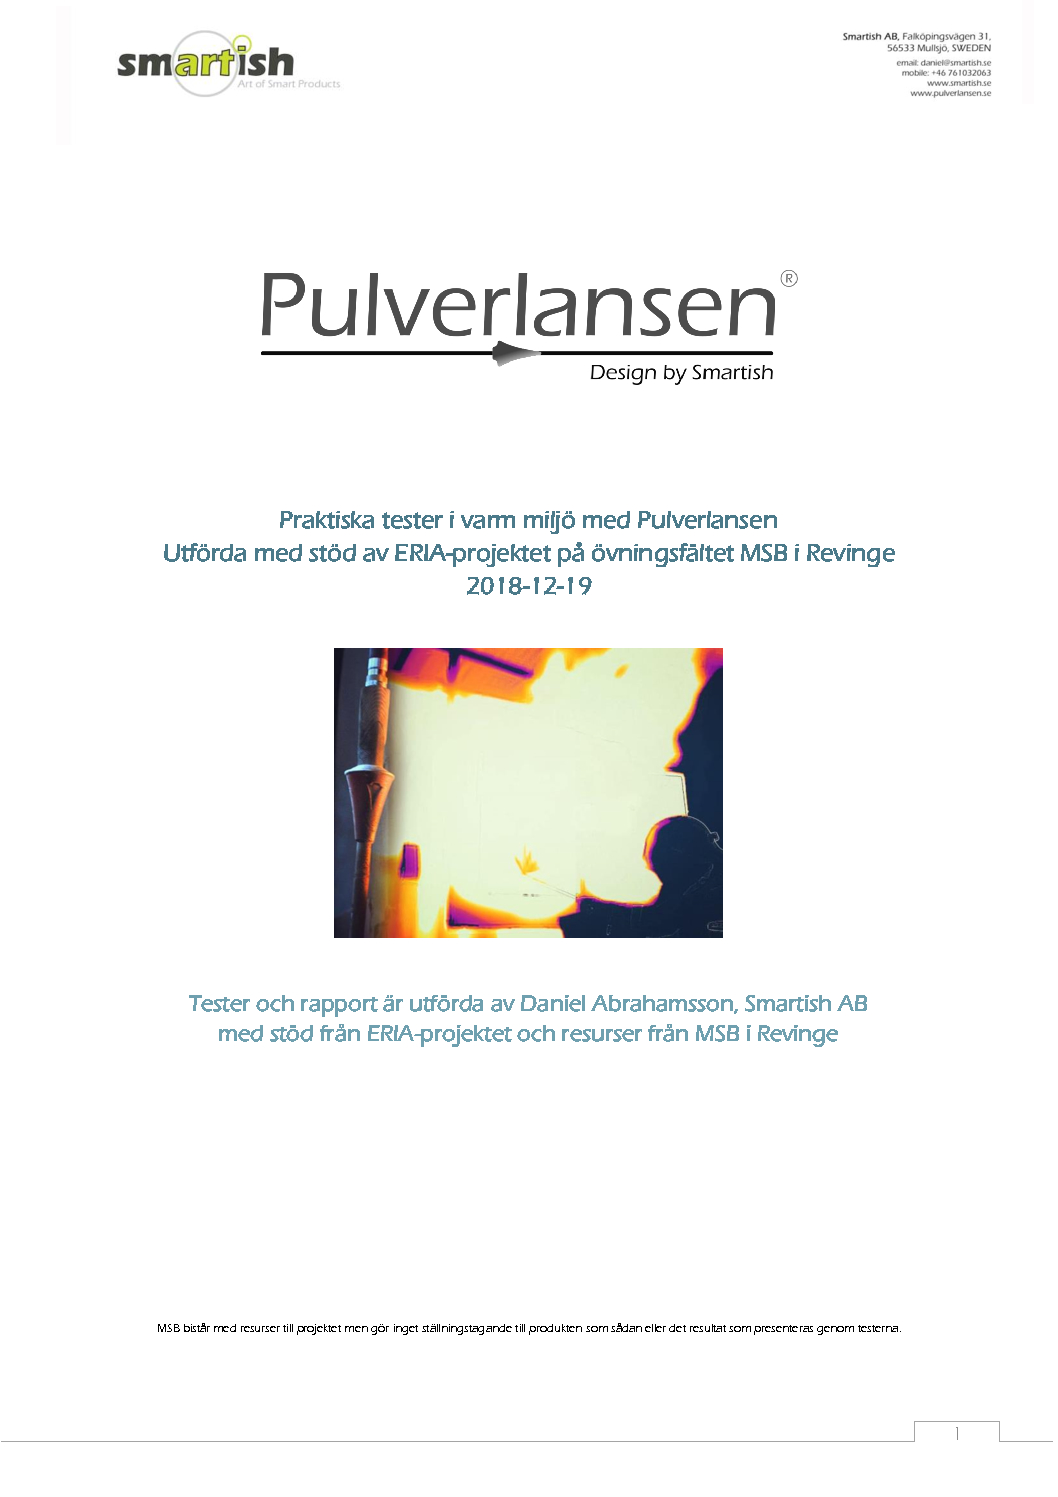 Testrapport Pulverlansen ERIA projeket Revinge pdf - Test report Room fire and Backdraft